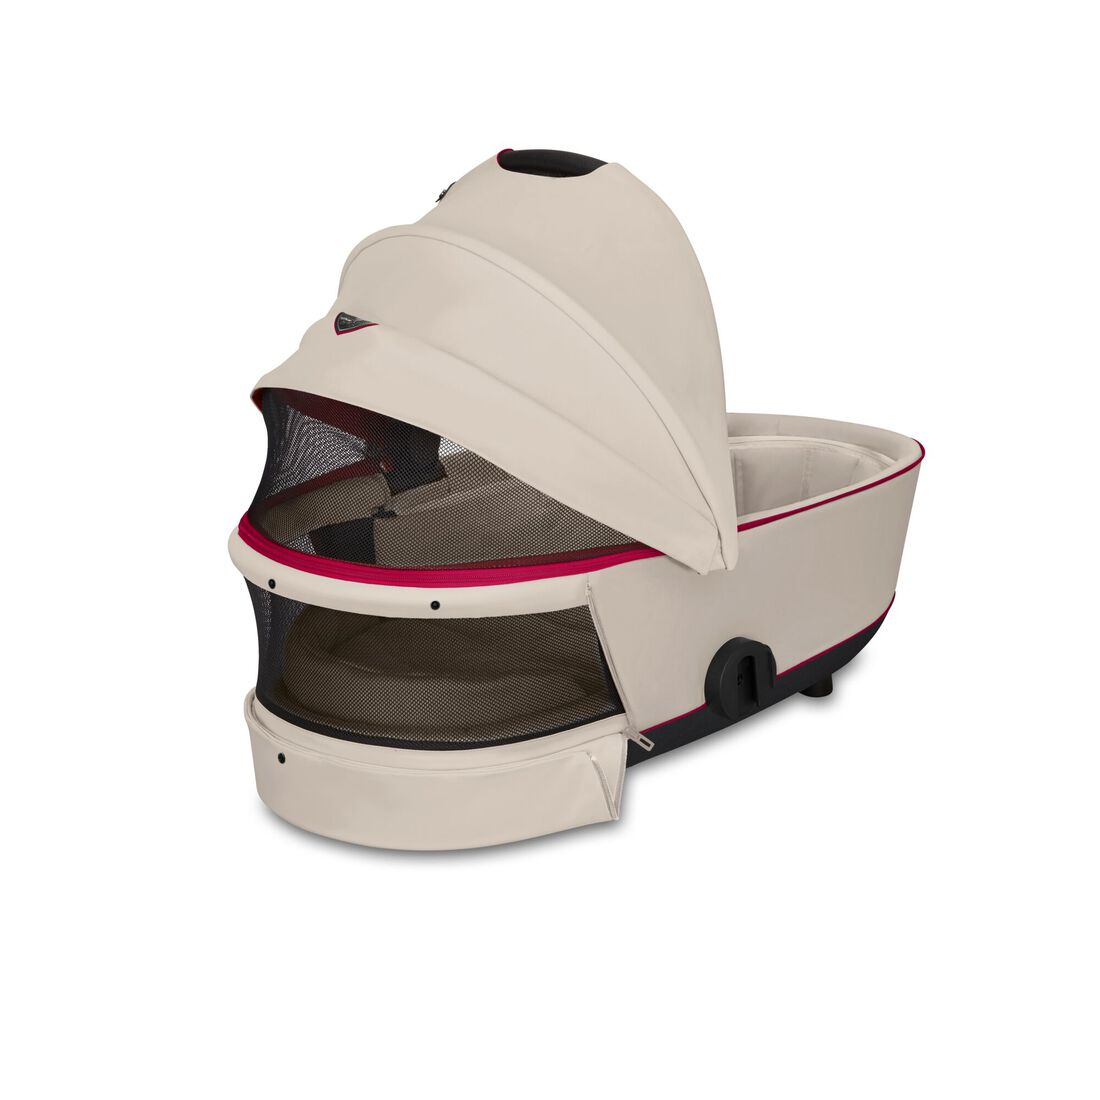 CYBEX Mios Lux Carry Cot - Ferrari Silver Grey in Ferrari Silver Grey large image number 3